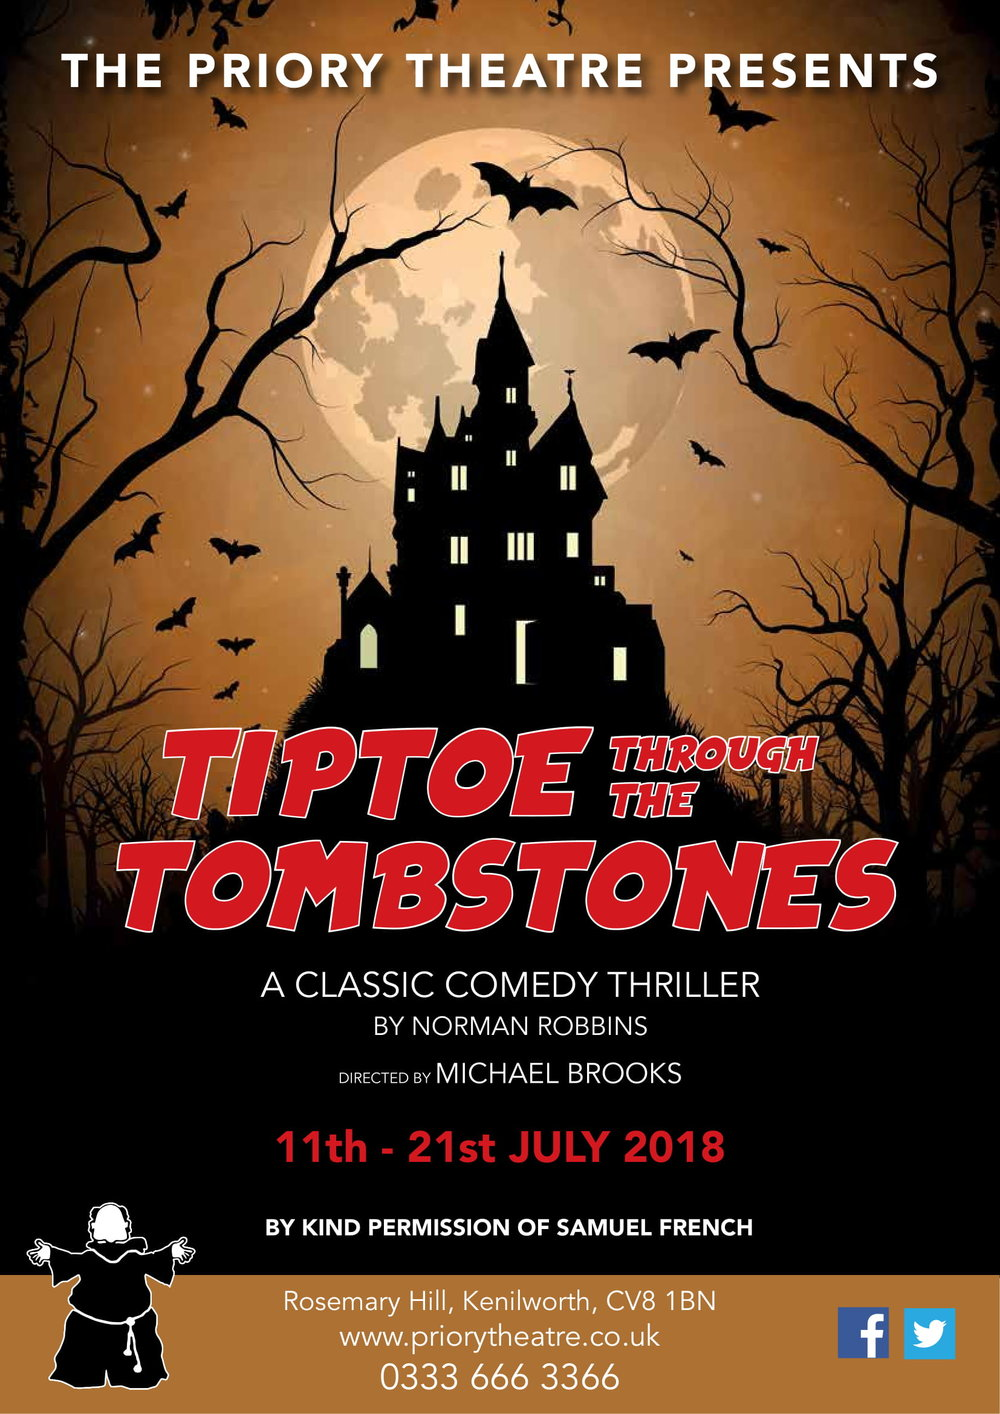 Tiptoe through the Tombstones Poster-1.jpg